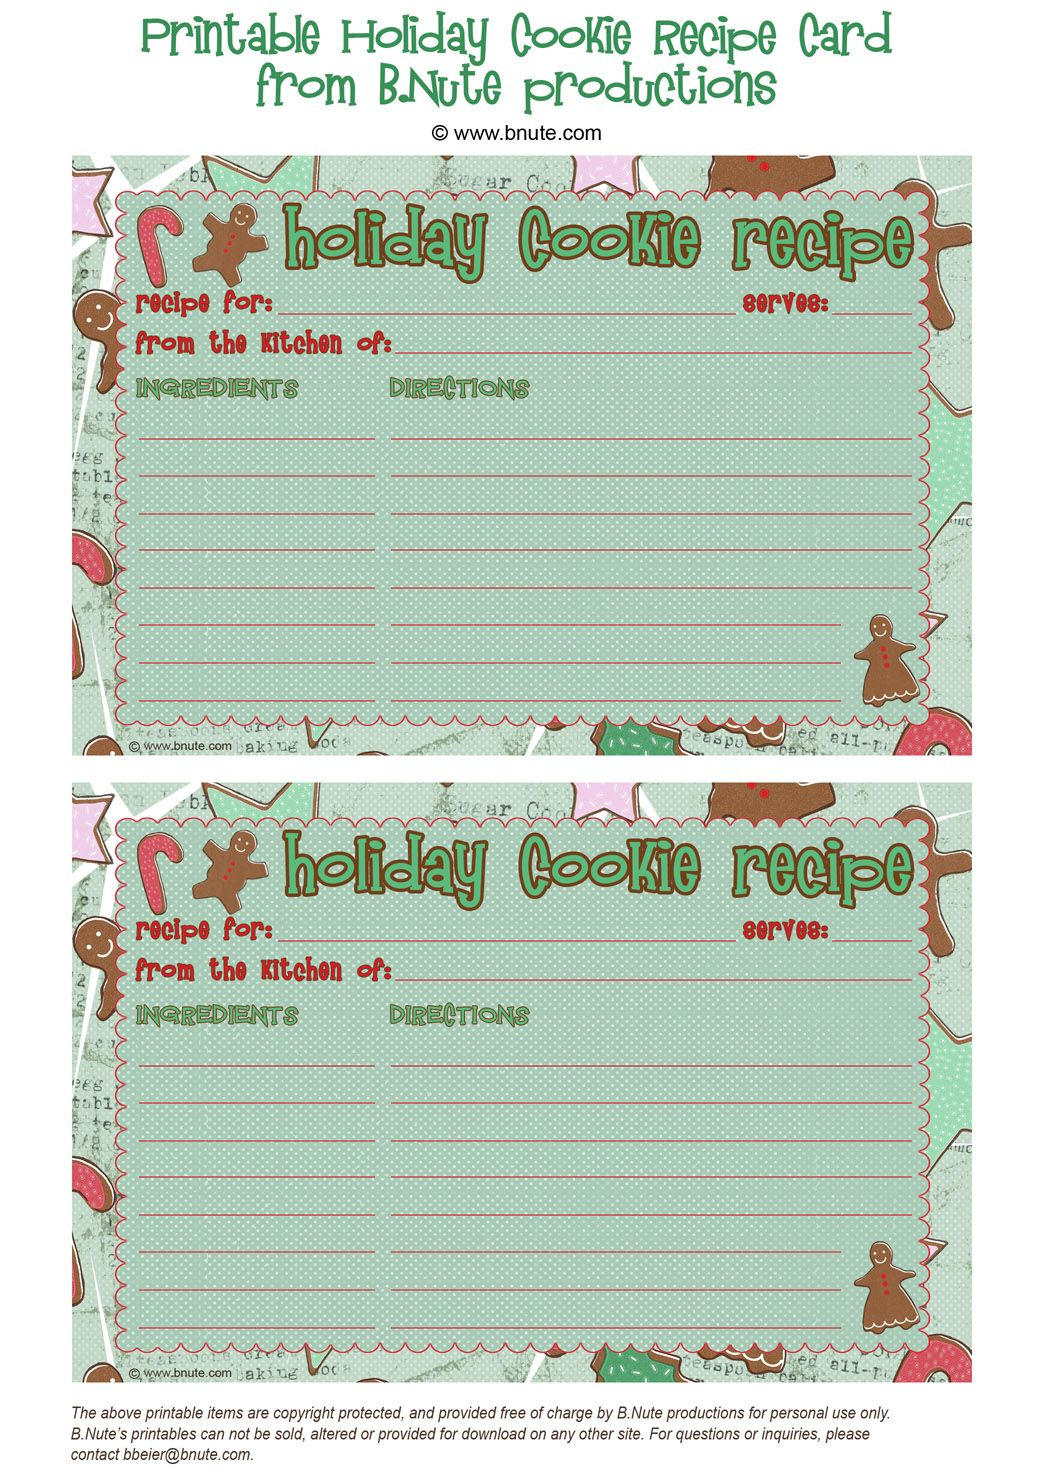 Bnute Productions Free Printable Holiday Cookie Recipe Card Christmas Recipe Cards Recipe Cards Template Free Printable Christmas Cards